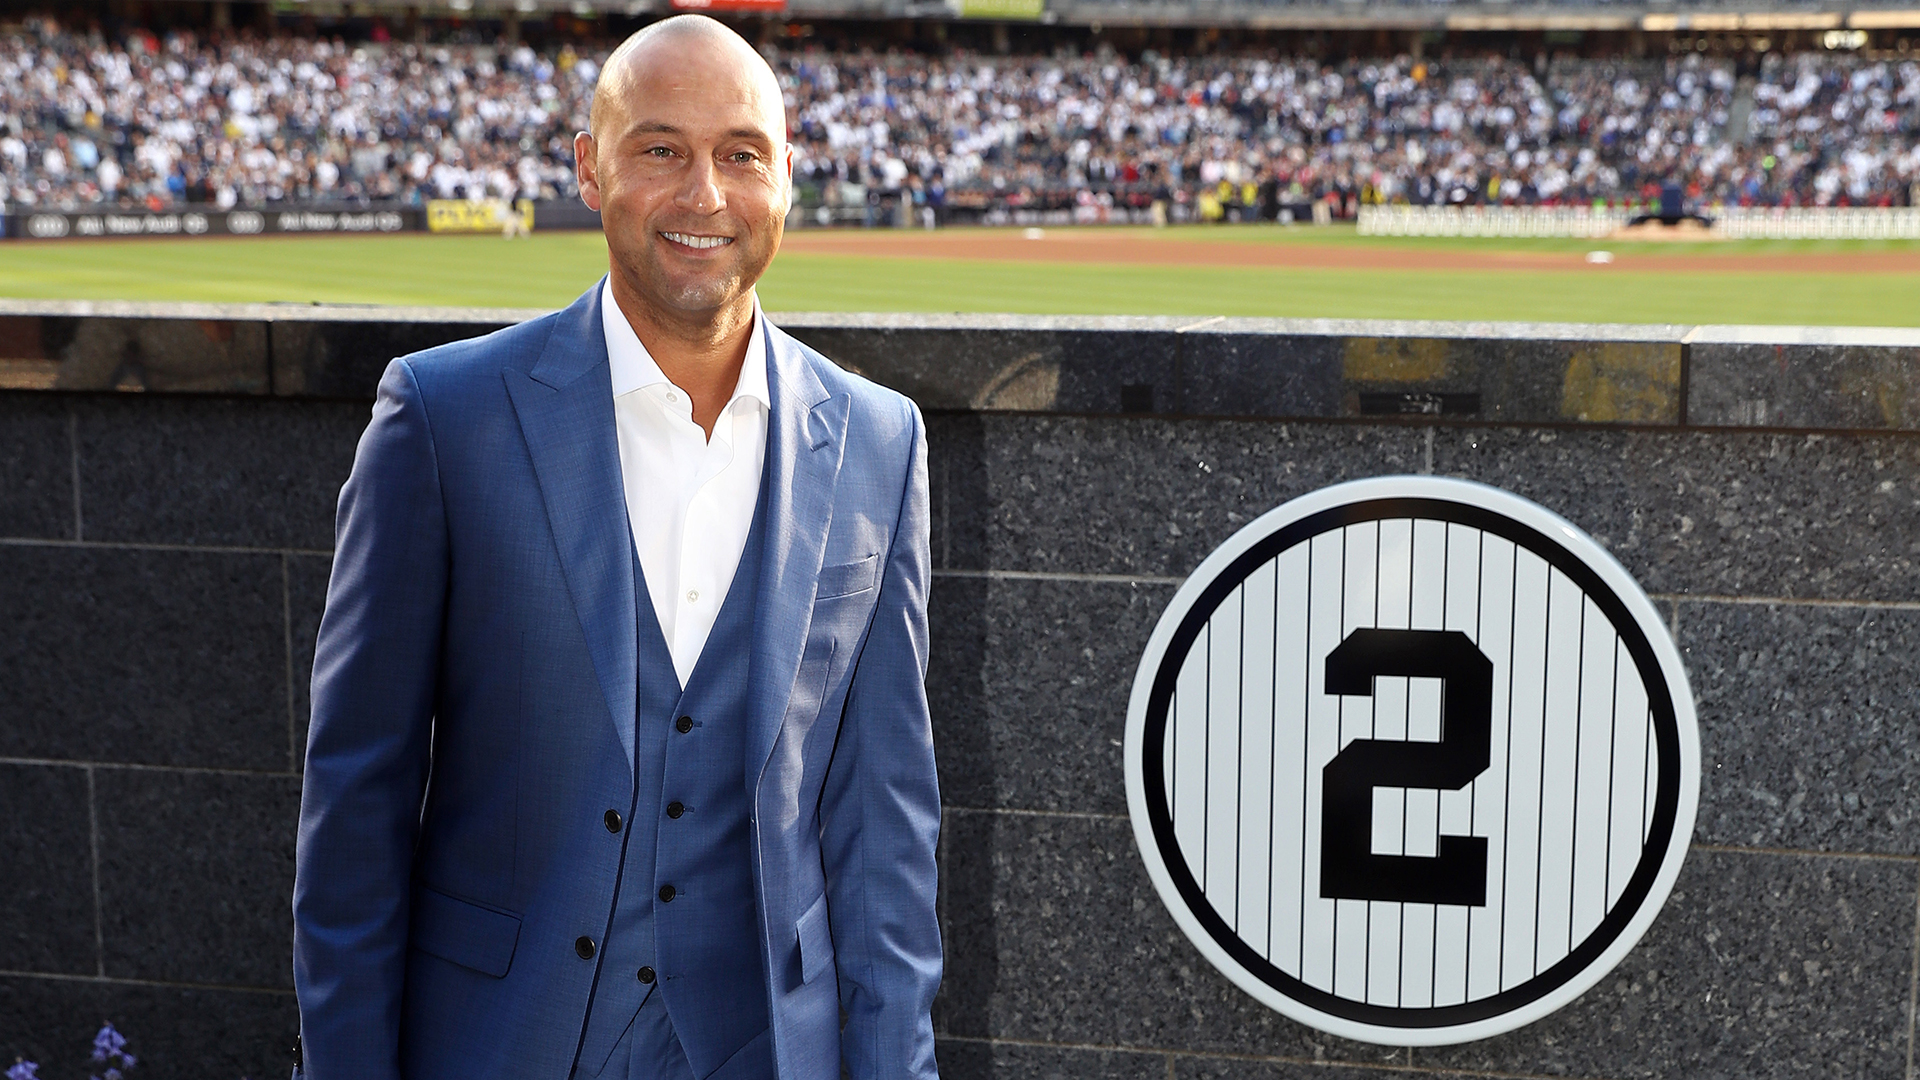 May 14, 2017; Bronx, NY, USA; Former New York Yankees shortstop Derek Jeter poses with his retired jersey number during a ceremony before the game against the Houston Astros at Yankee Stadium. Mandatory Credit: Elsa/Pool Photo via USA TODAY Sports